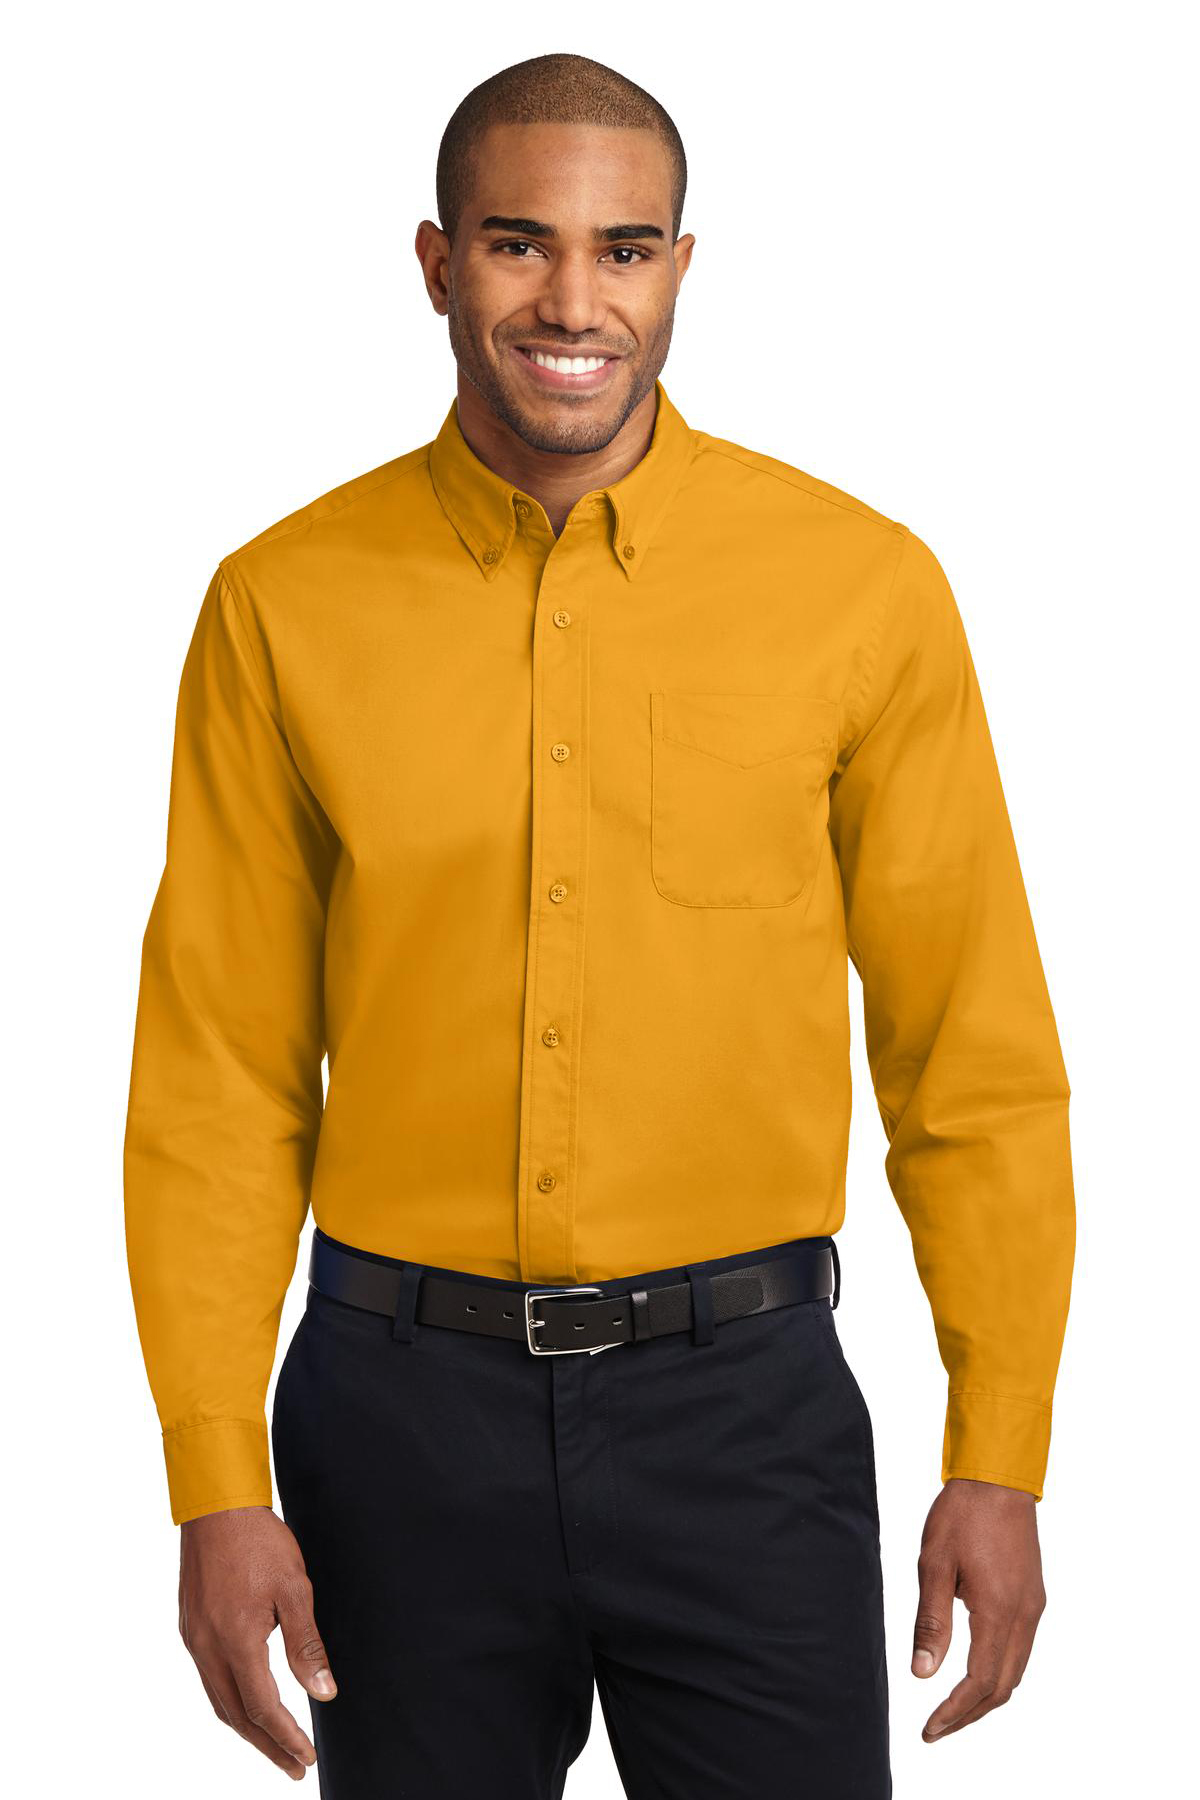 Woven-Shirts-Easy-Care-44